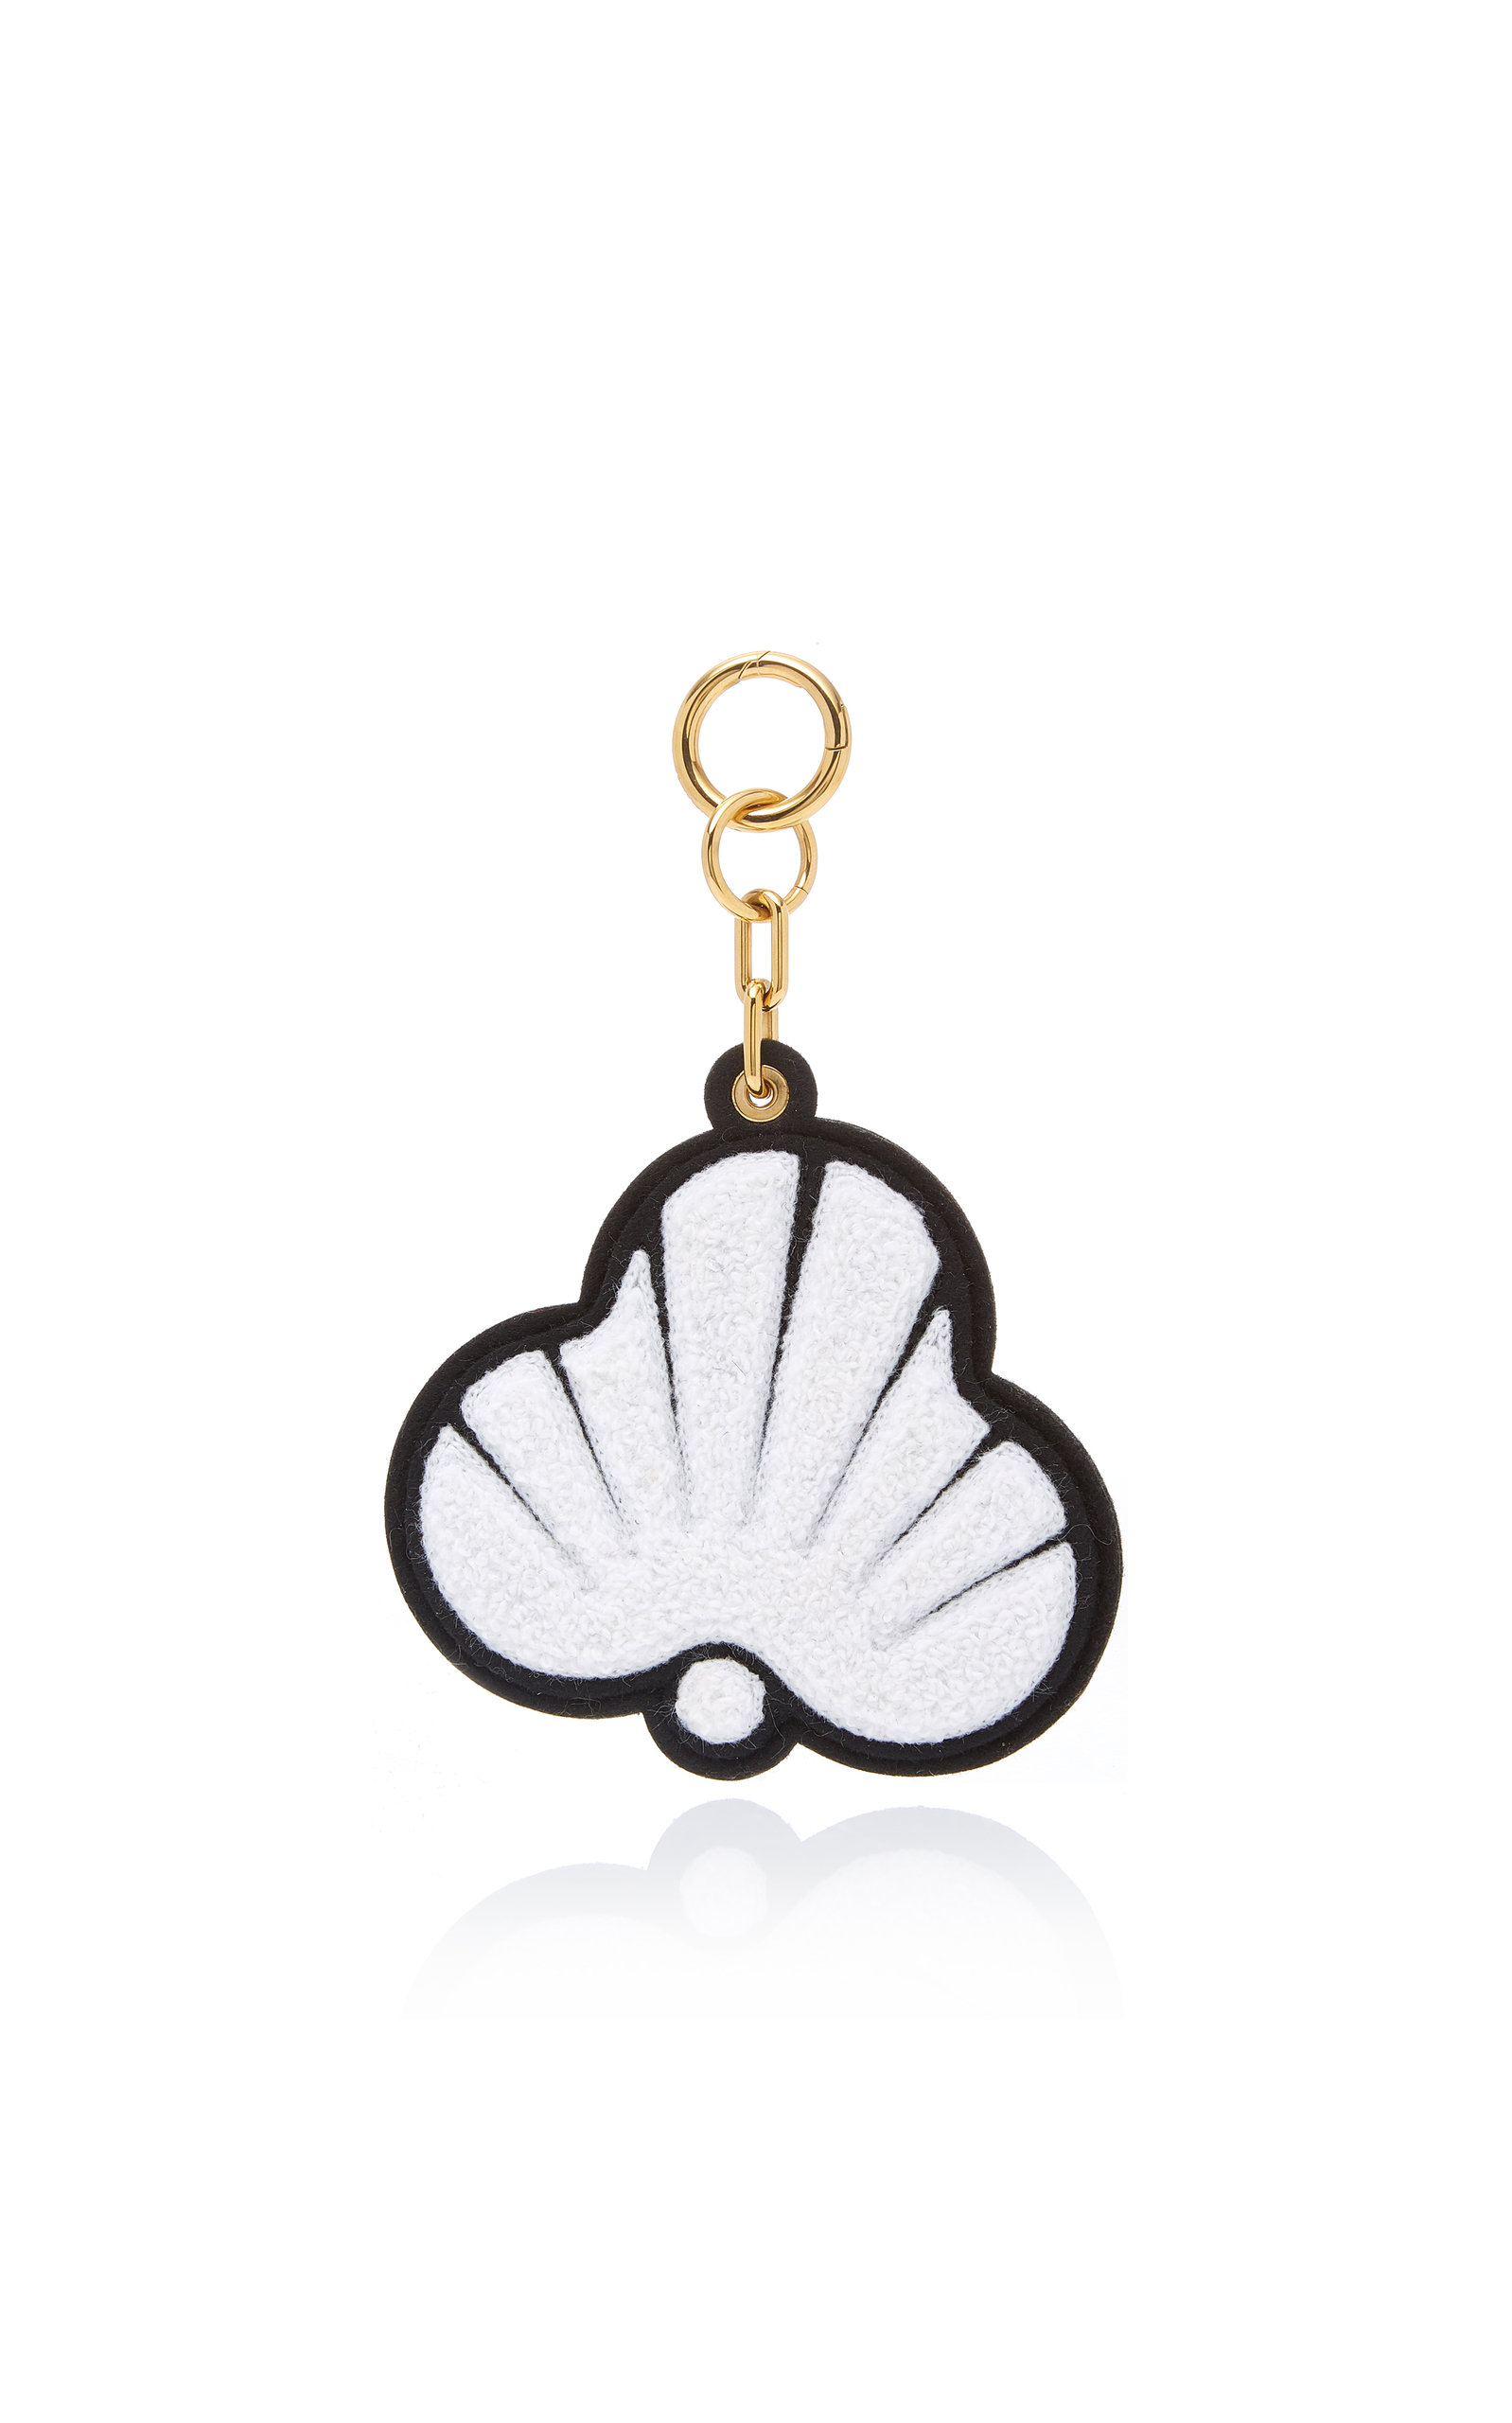 Chaos EXCLUSIVE CHENILLE CLUB ACRYLIC KEY CHAIN